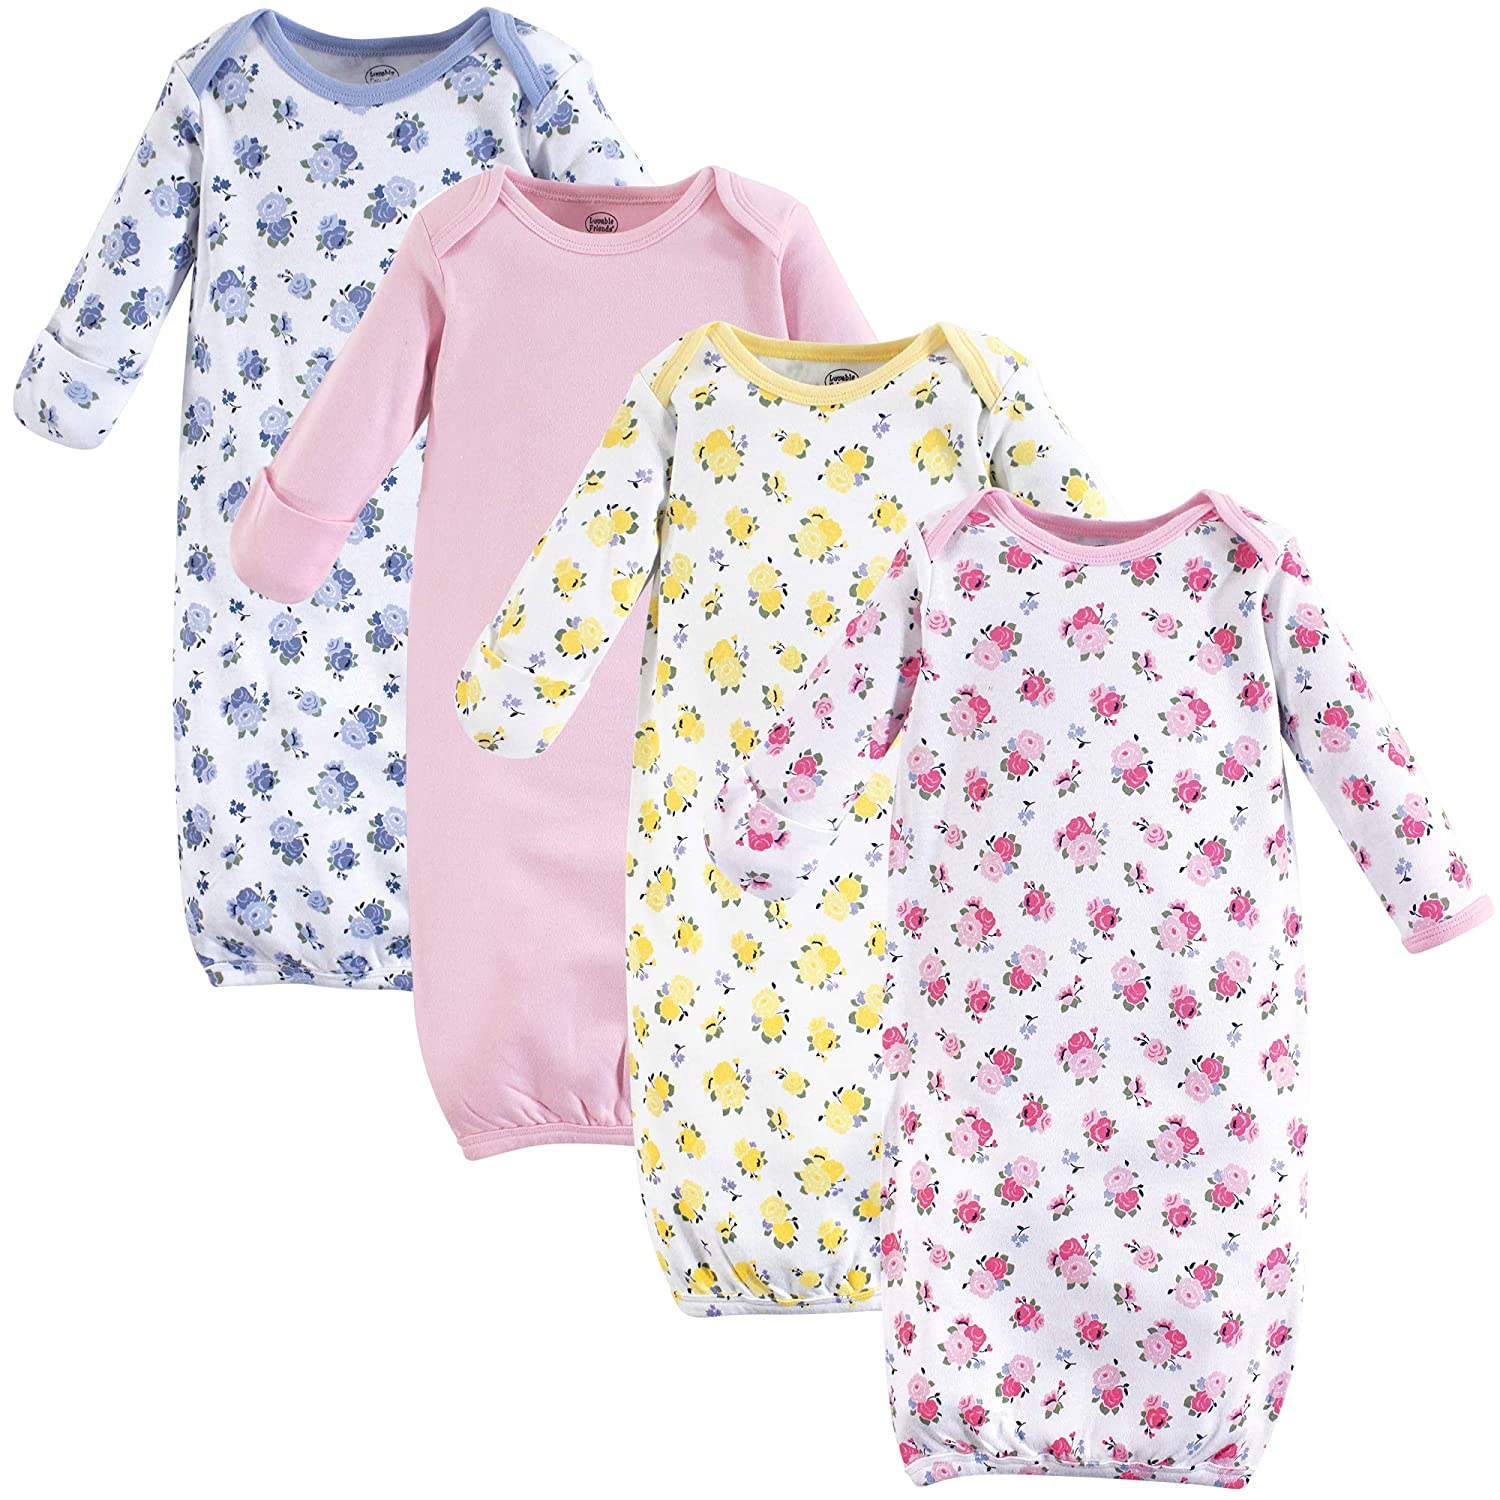 Luvable Friends baby-girls Baby 3 Pack Cotton Gown Blue Puppy 0-6 Months BabyVision 33000B